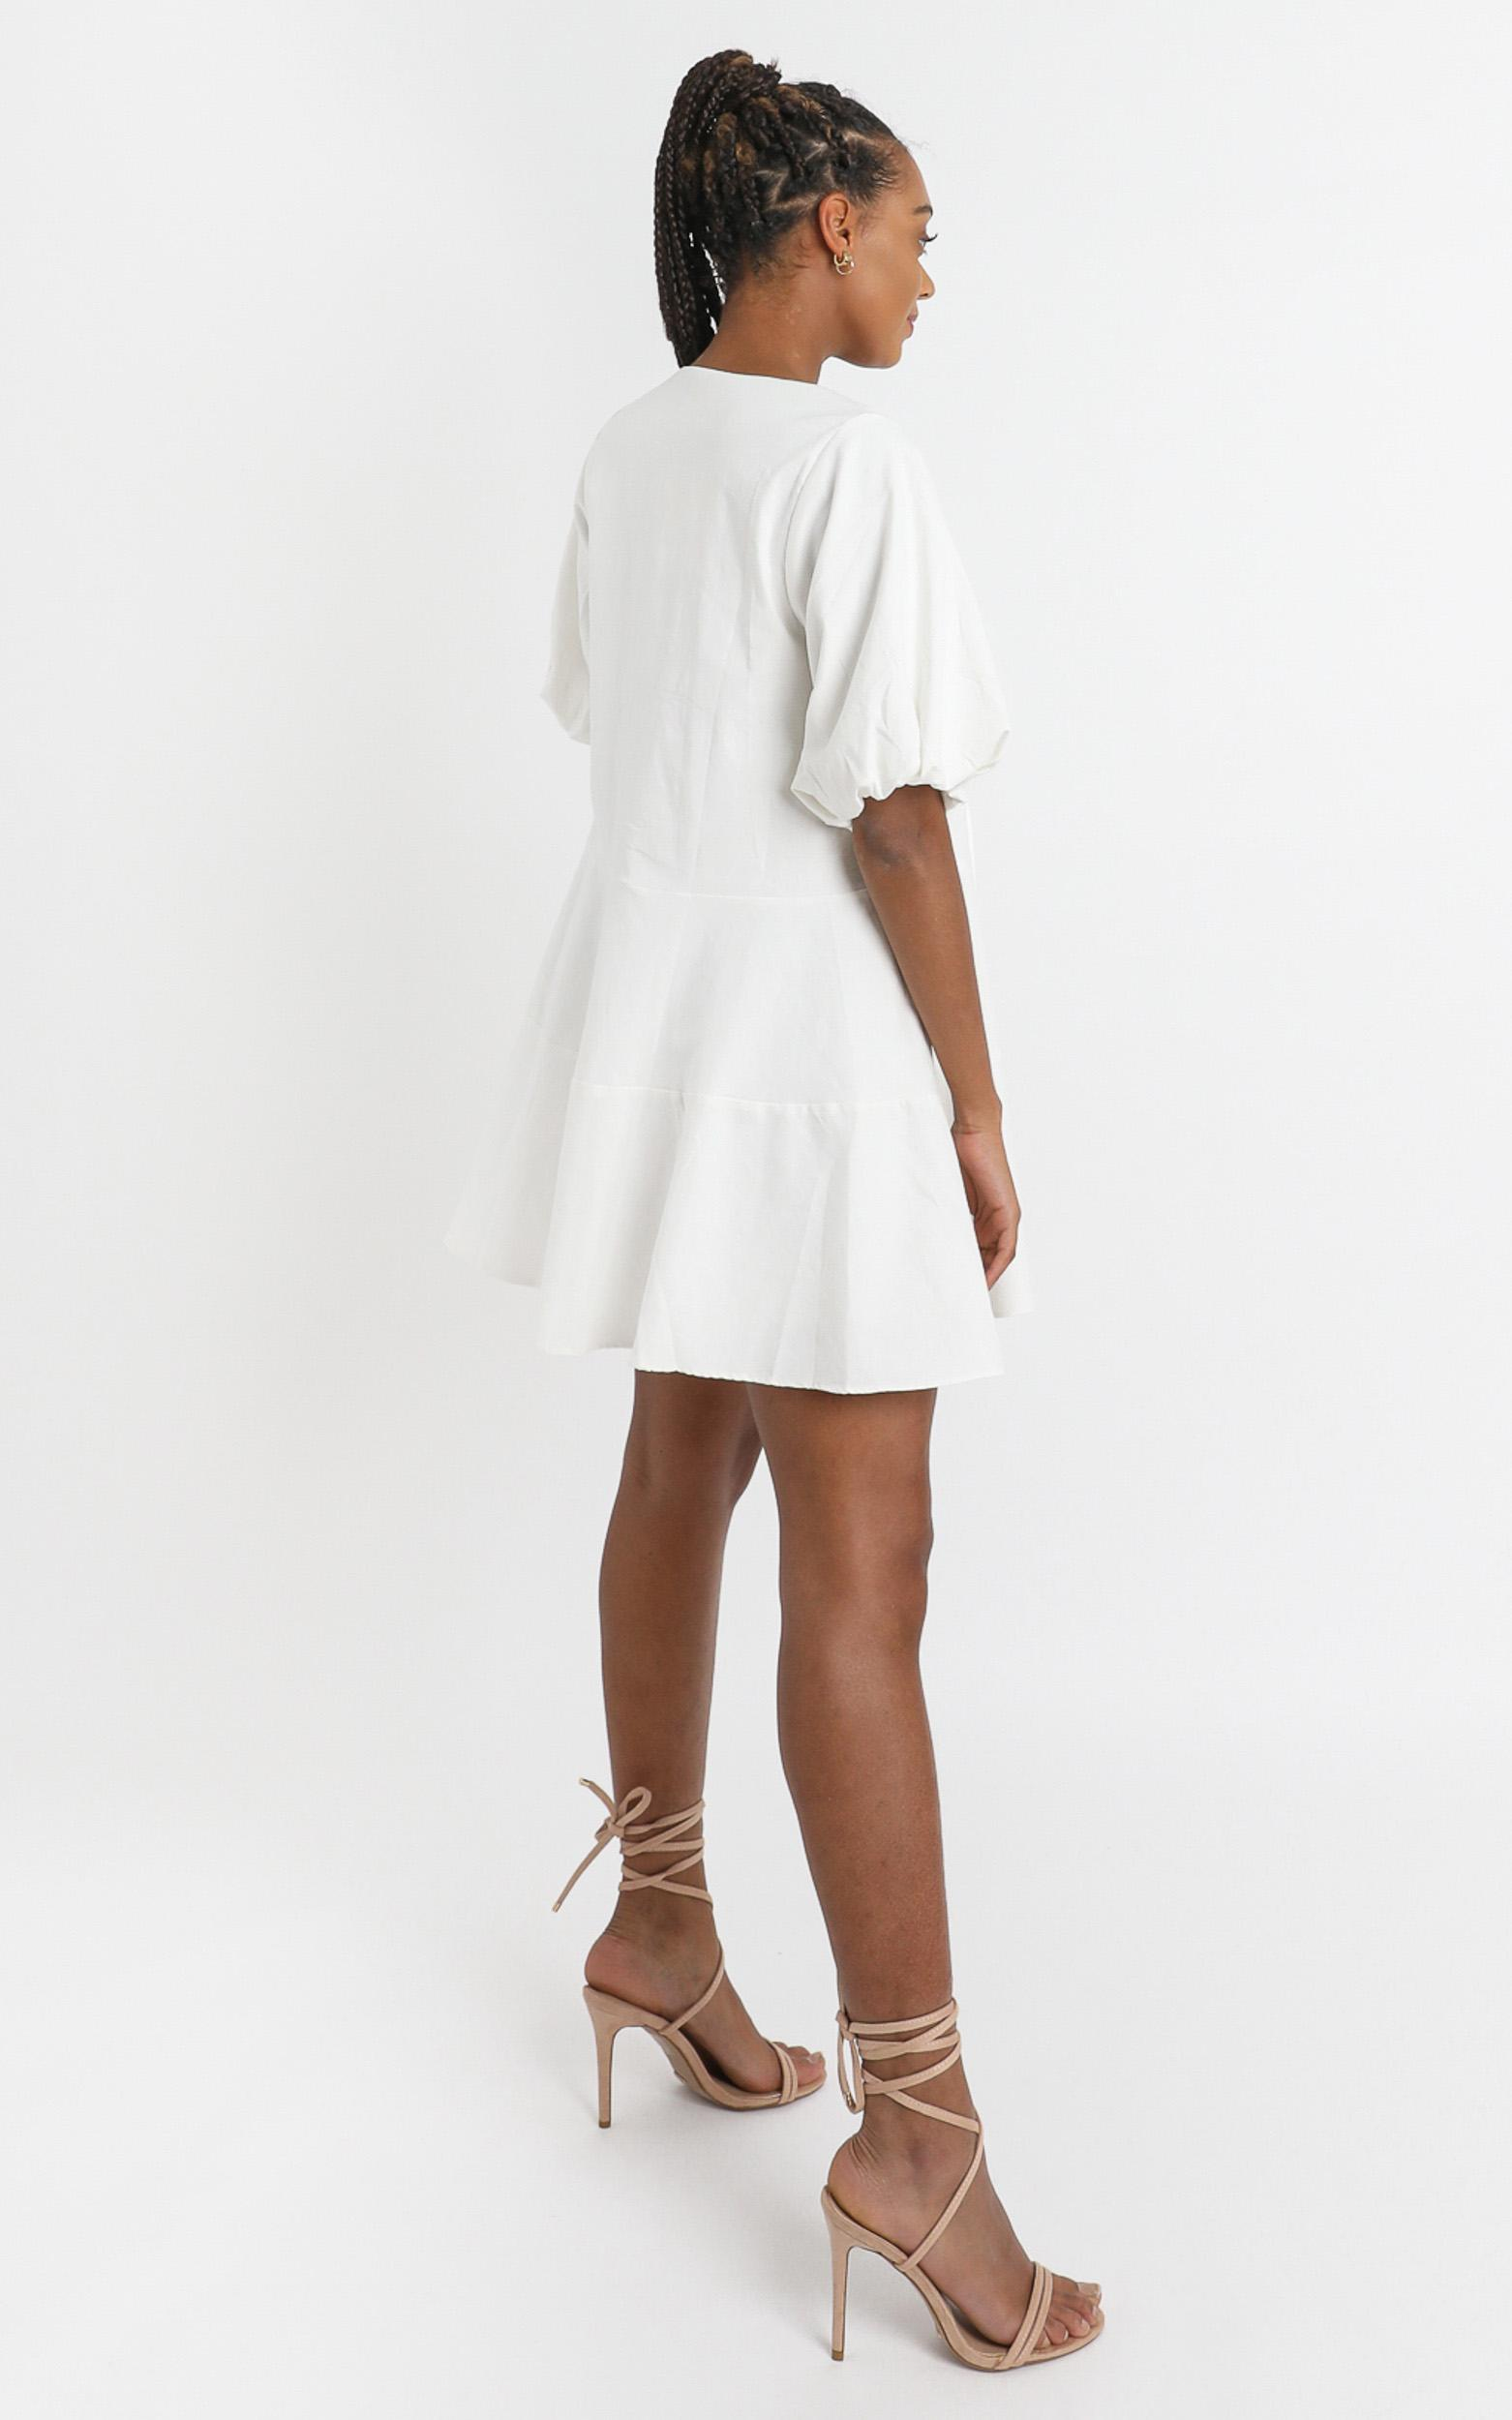 Krizza Mini Dress in white linen look - 6 (XS), WHT1, hi-res image number null